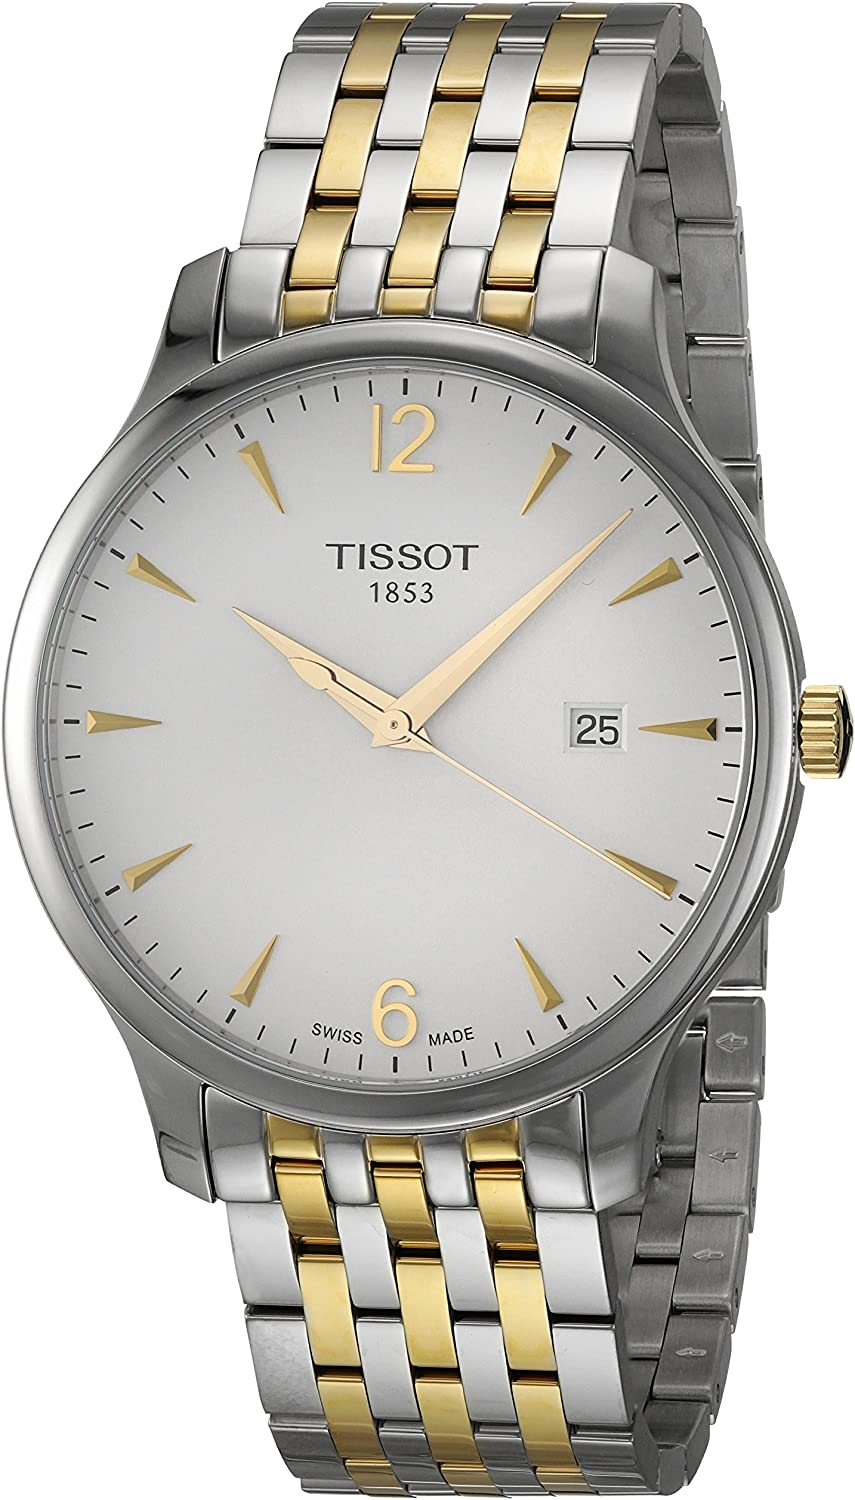 Tissot Mens Tradition Swiss Quartz Stainless Steel Dress Watch (Model: T0636102203700)